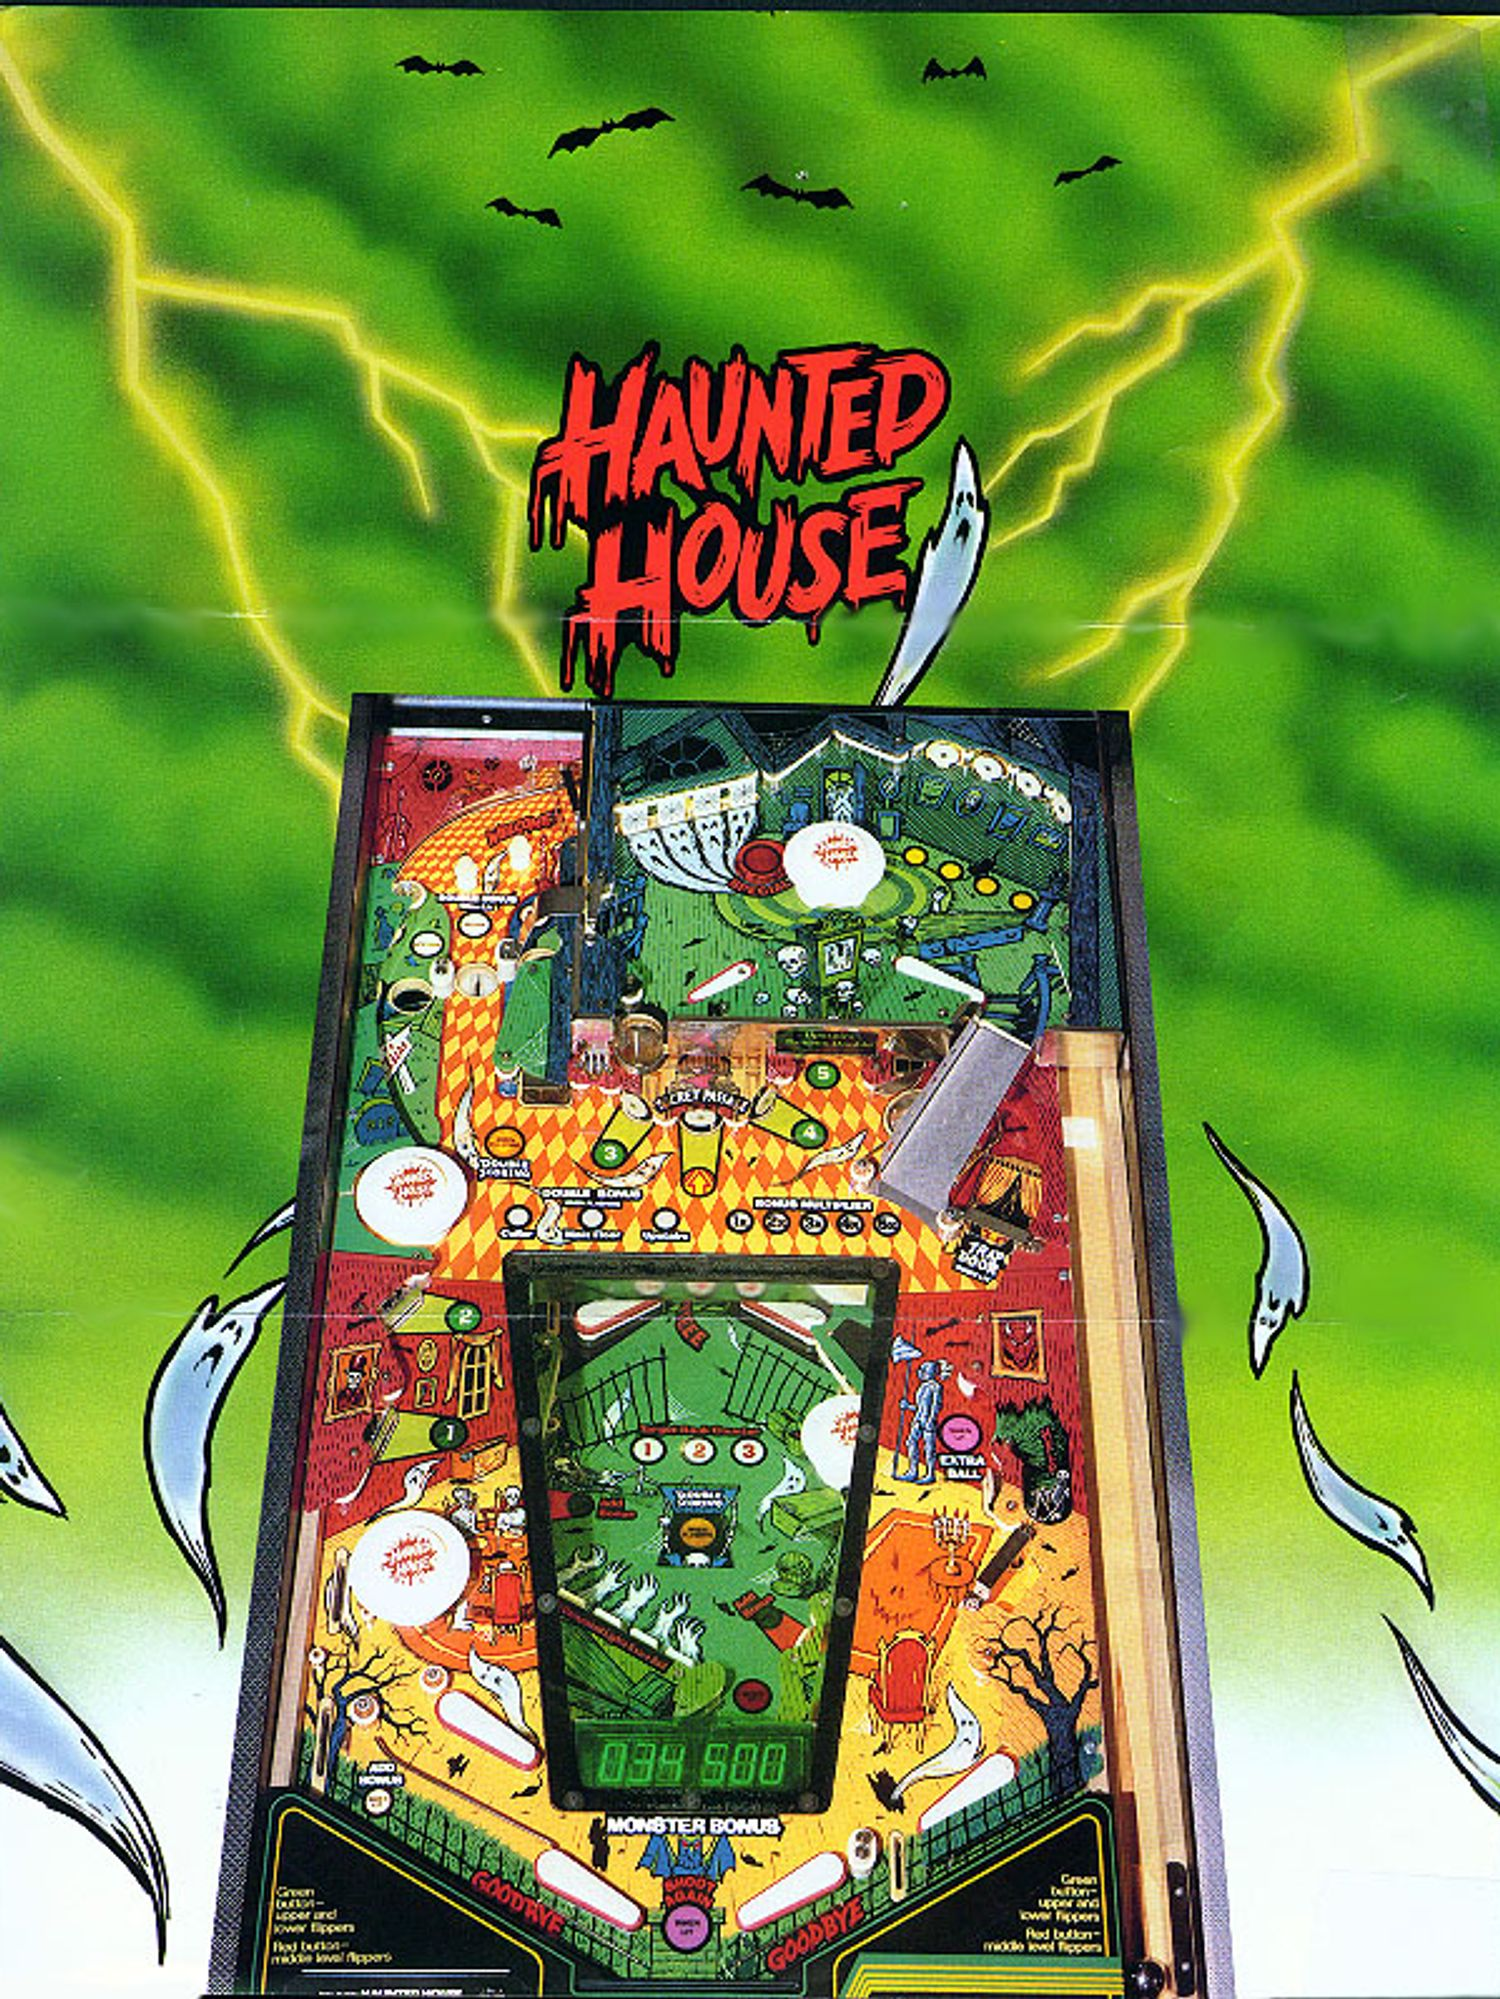 Haunted House Flyer Page 3